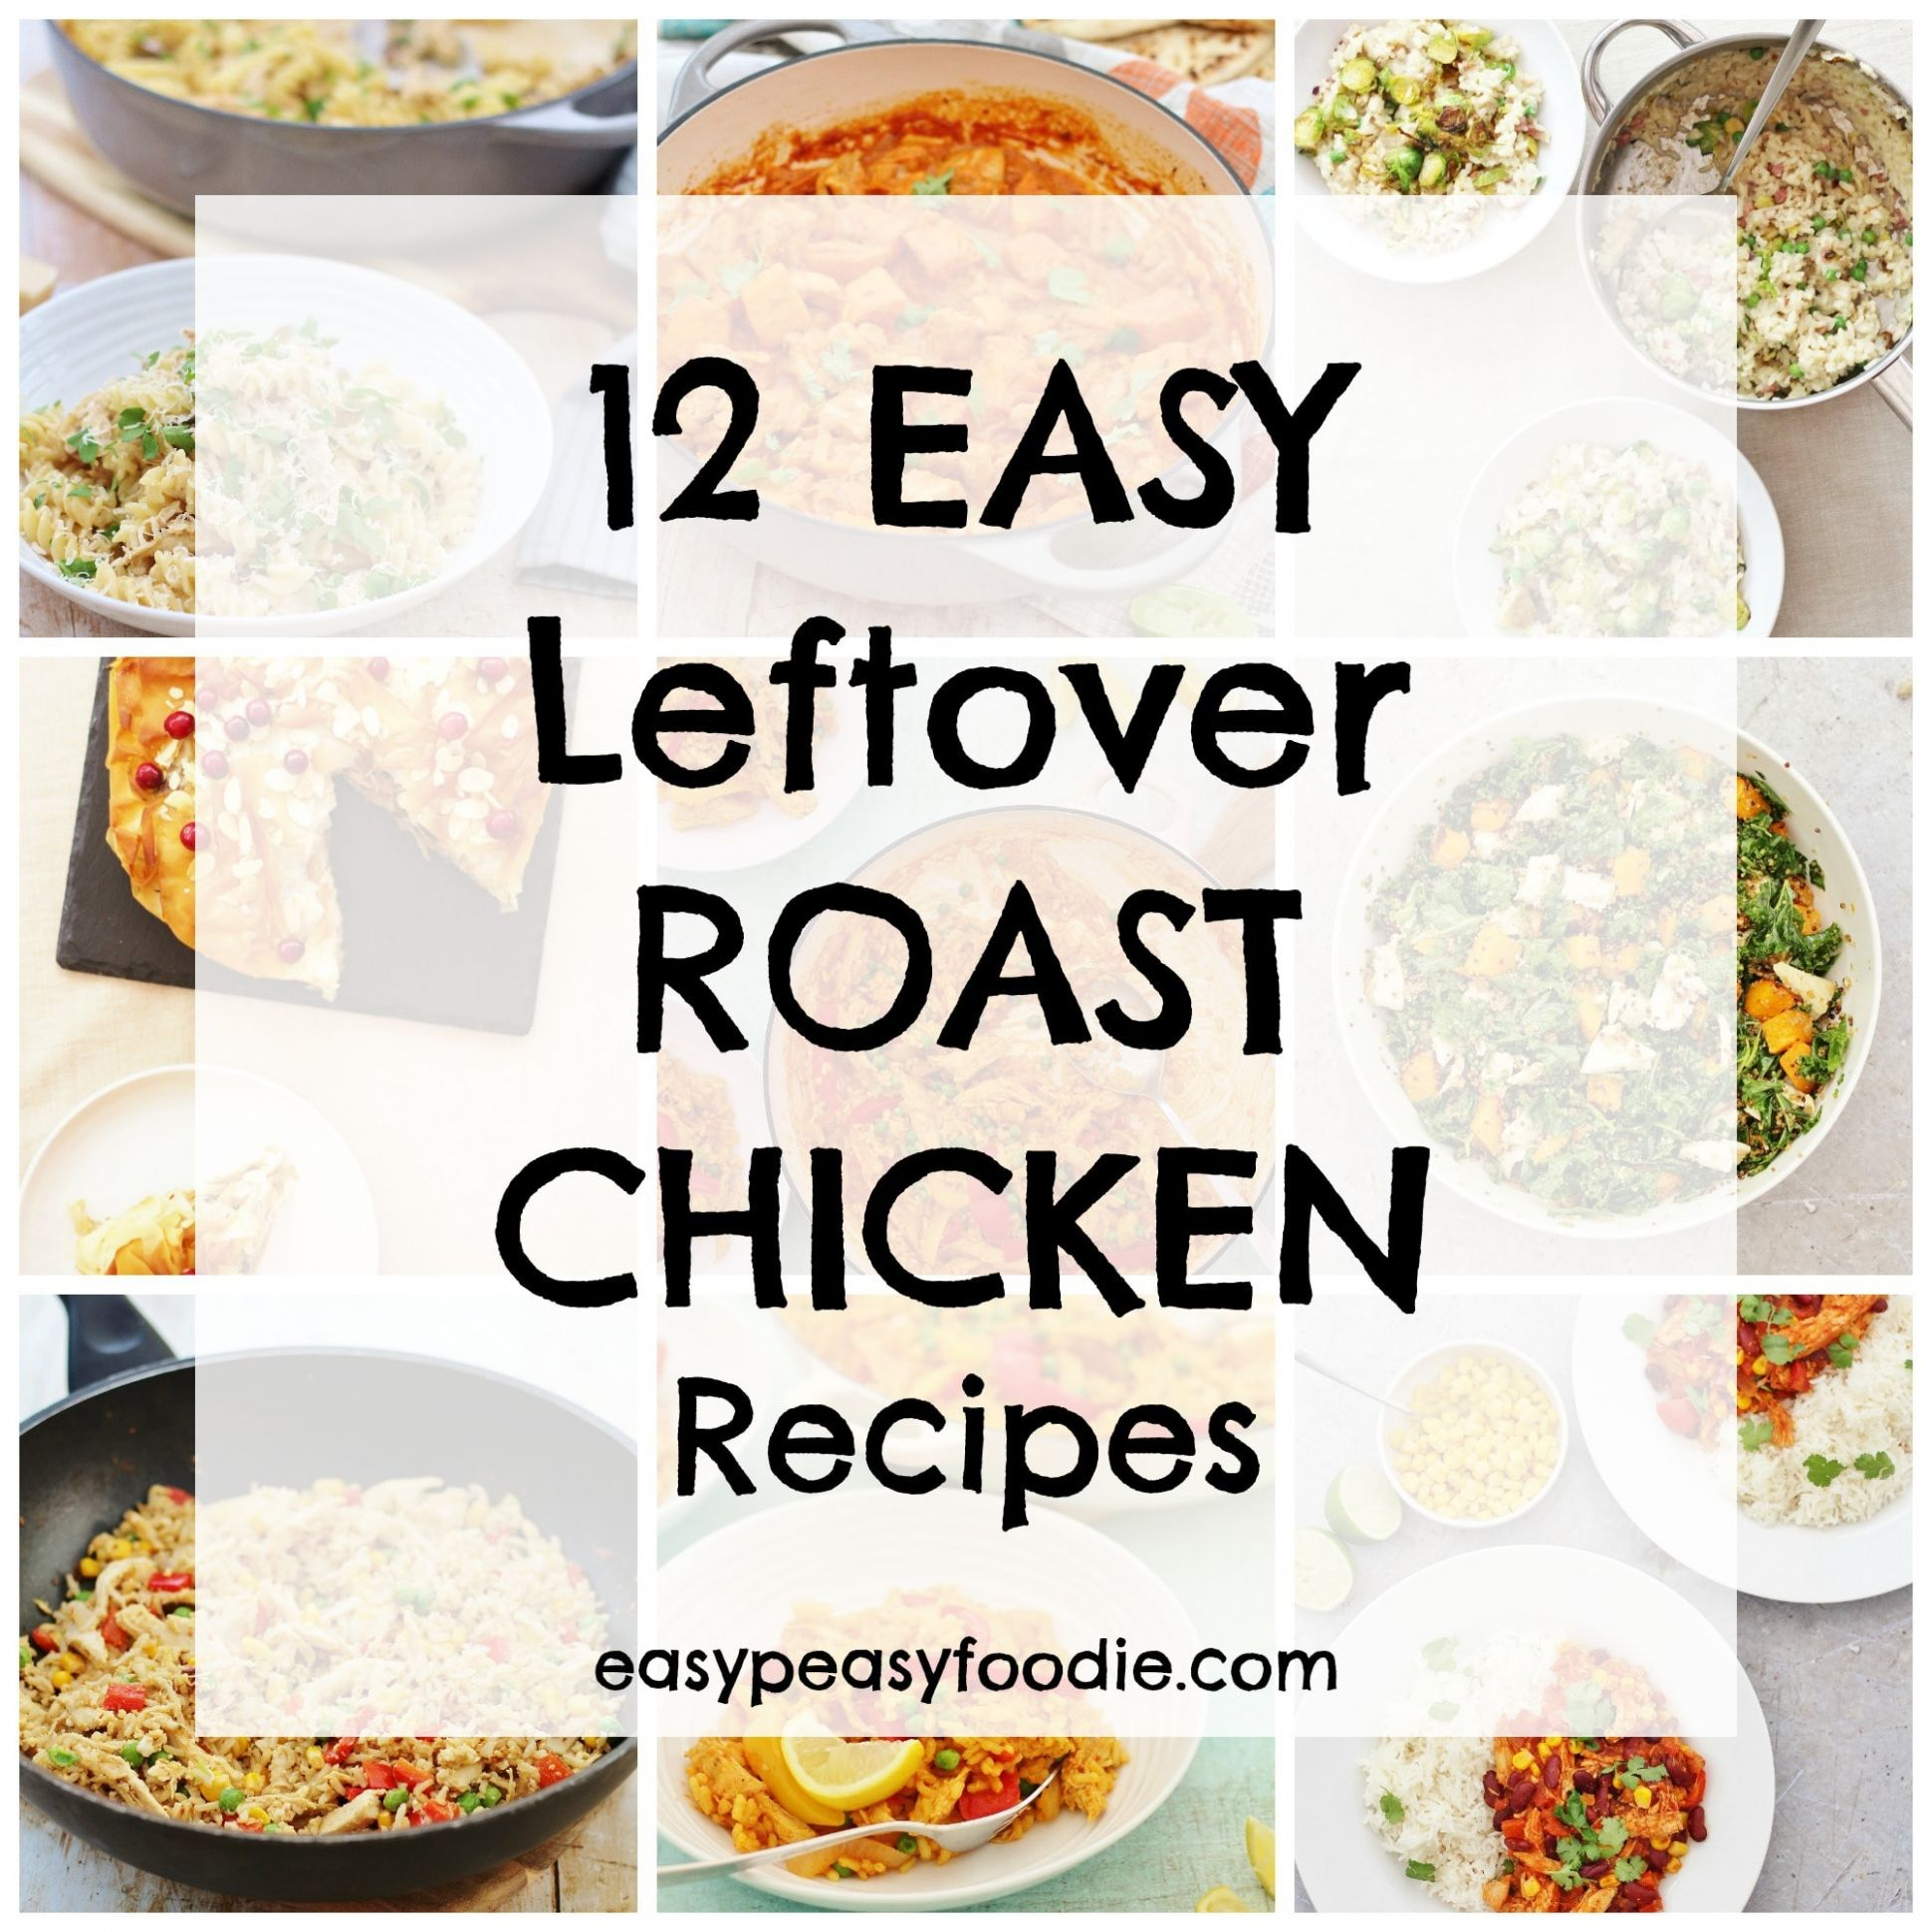 10 Easy Leftover Roast Chicken Recipes - Easy Peasy Foodie - Recipe Chicken Breast Leftover